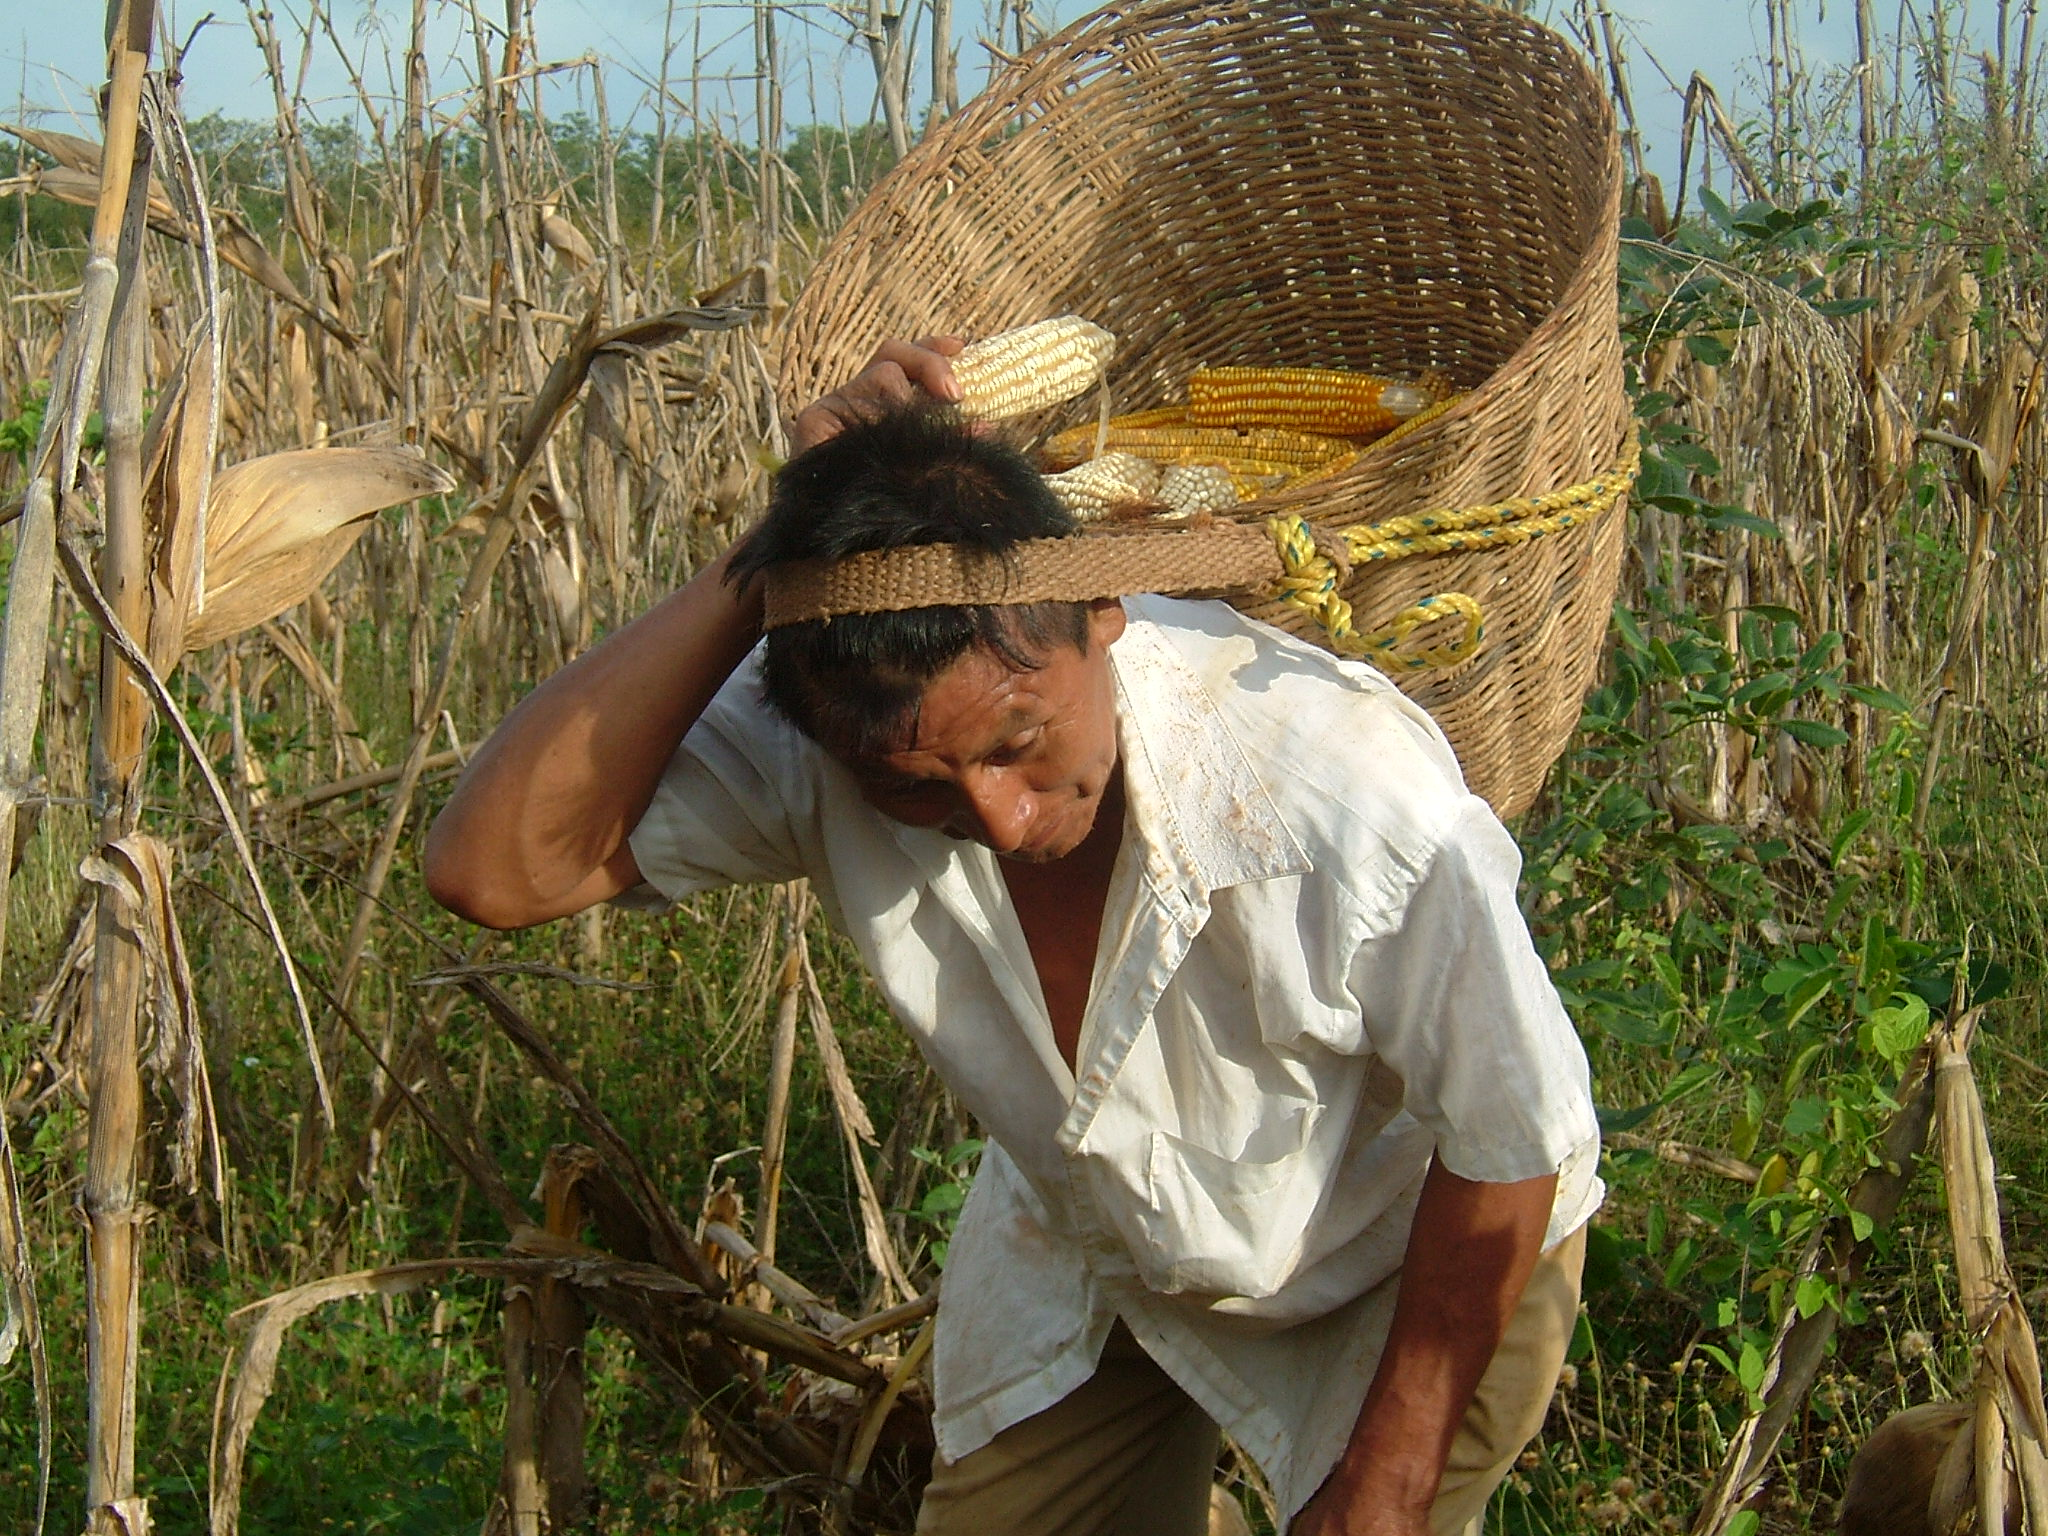 Harvesting native white and yellow corn in the Yucatan